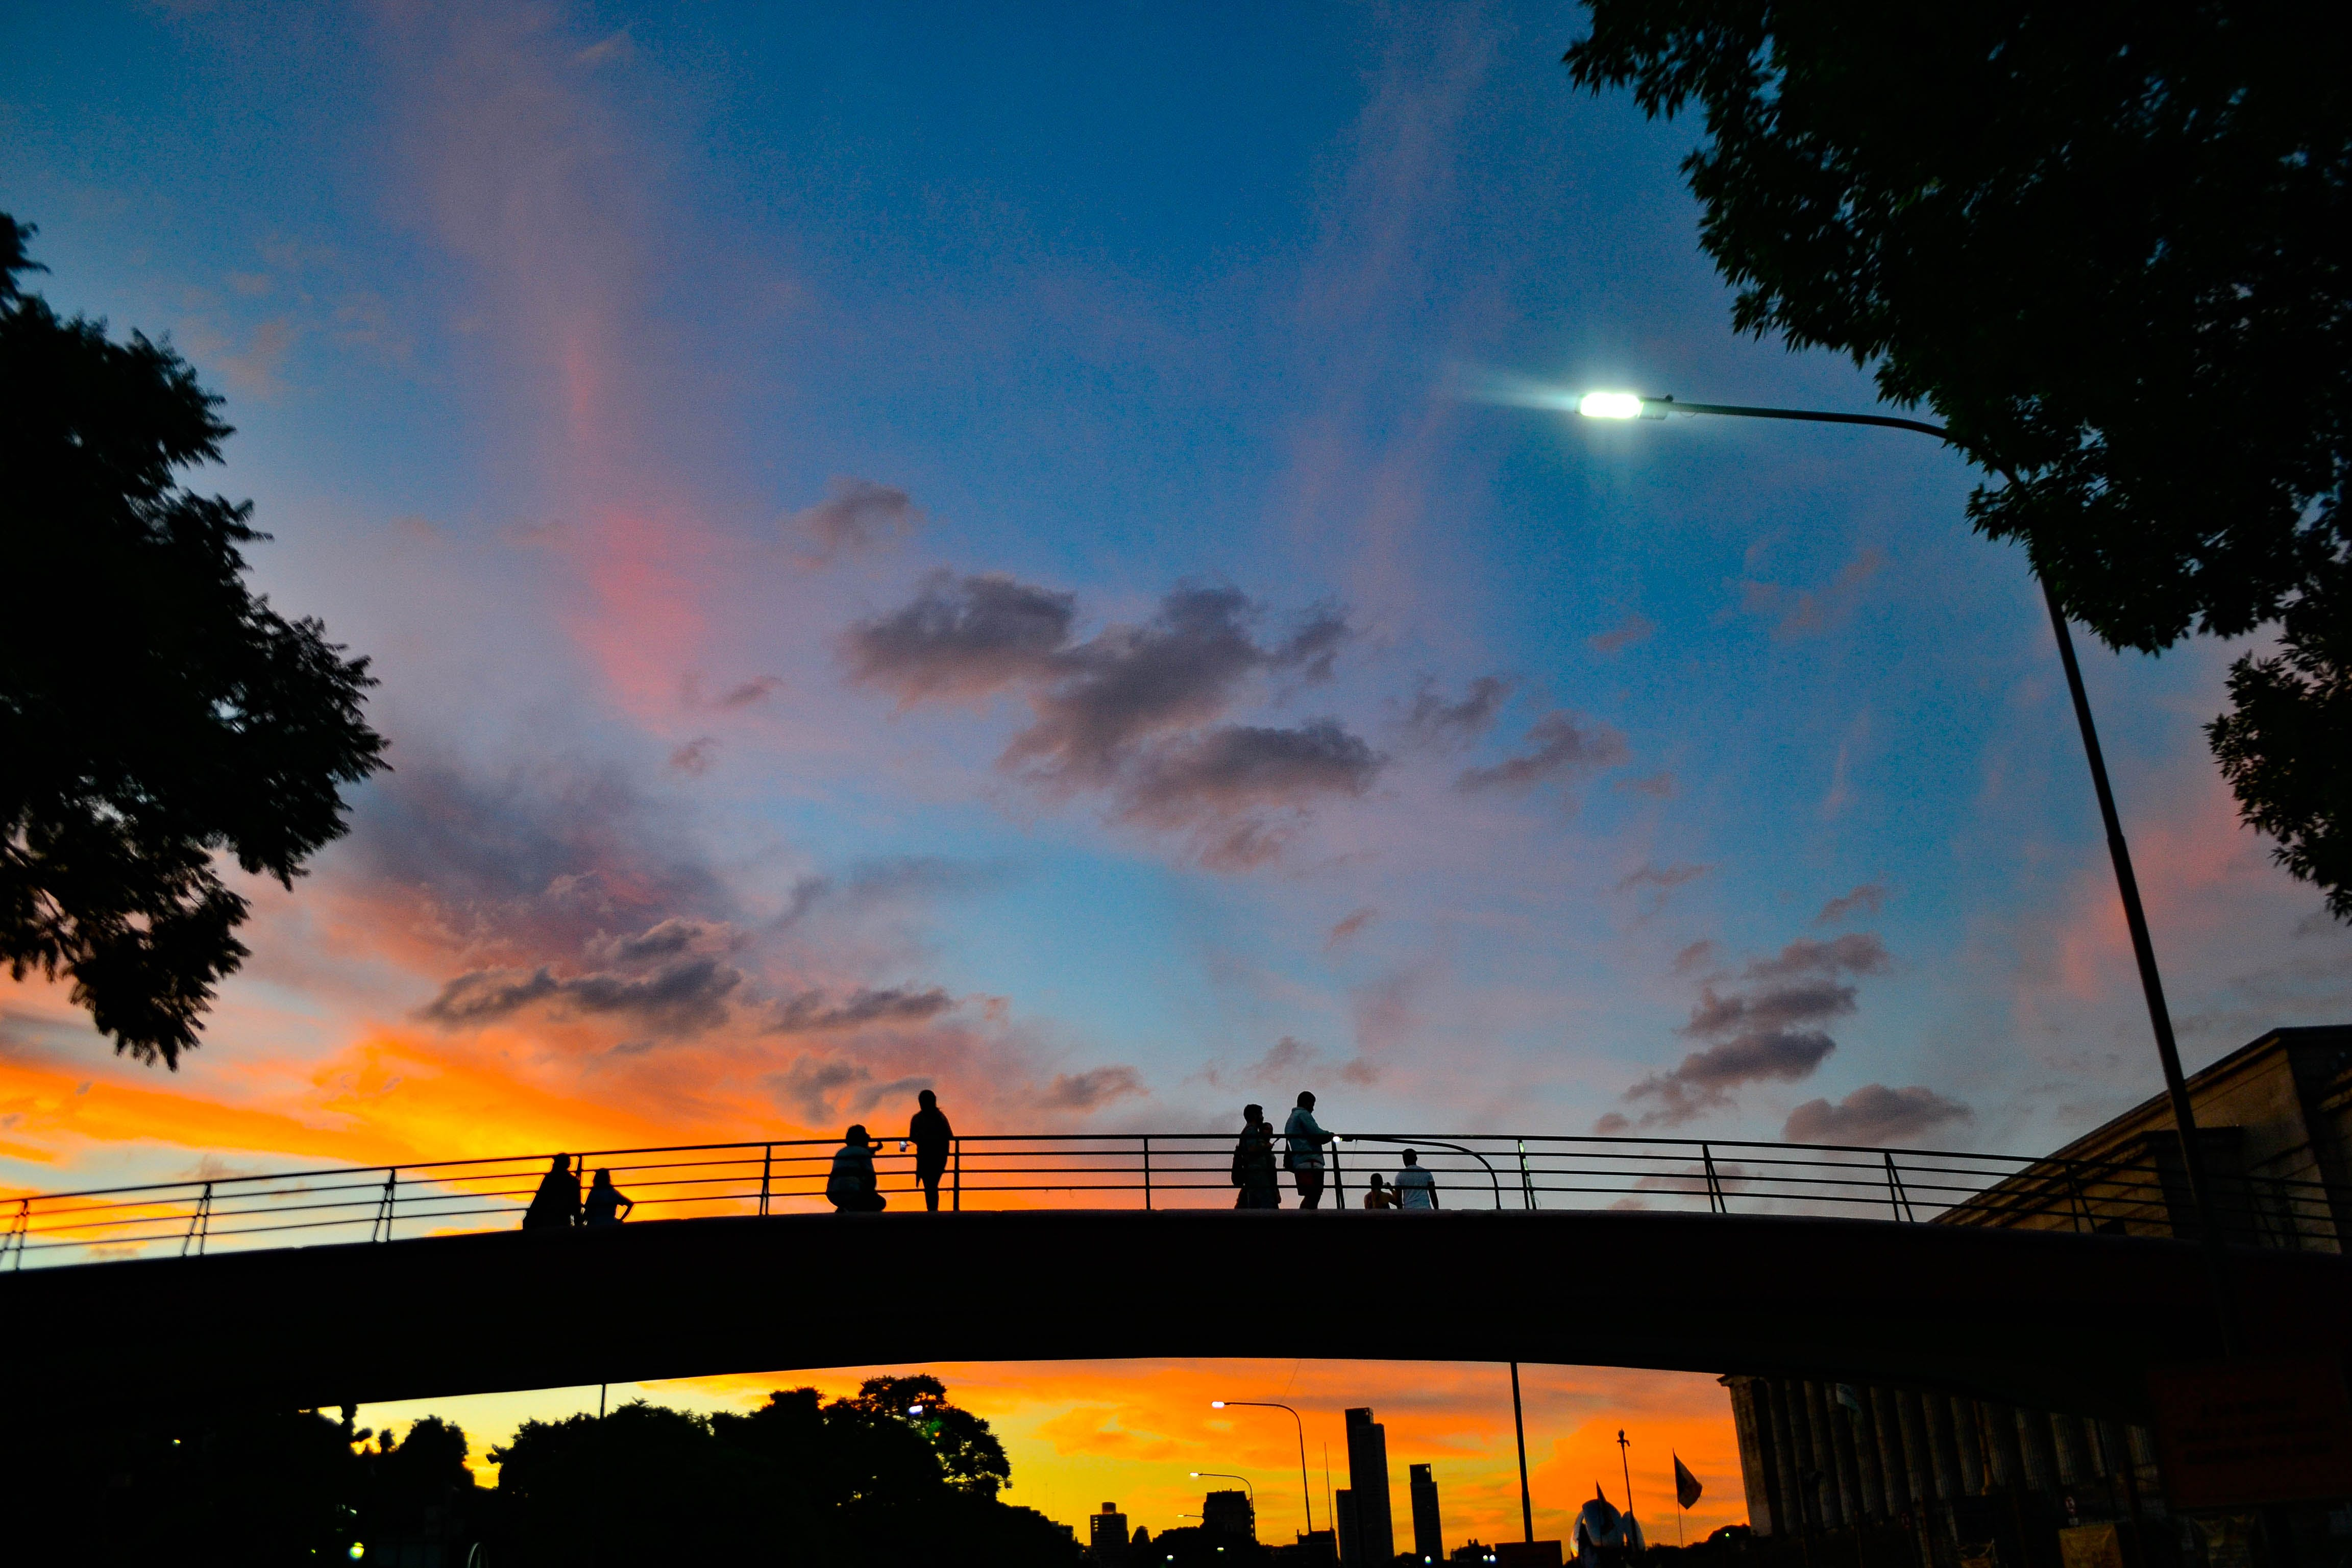 Silhouette Photography of People Standing on Bridge